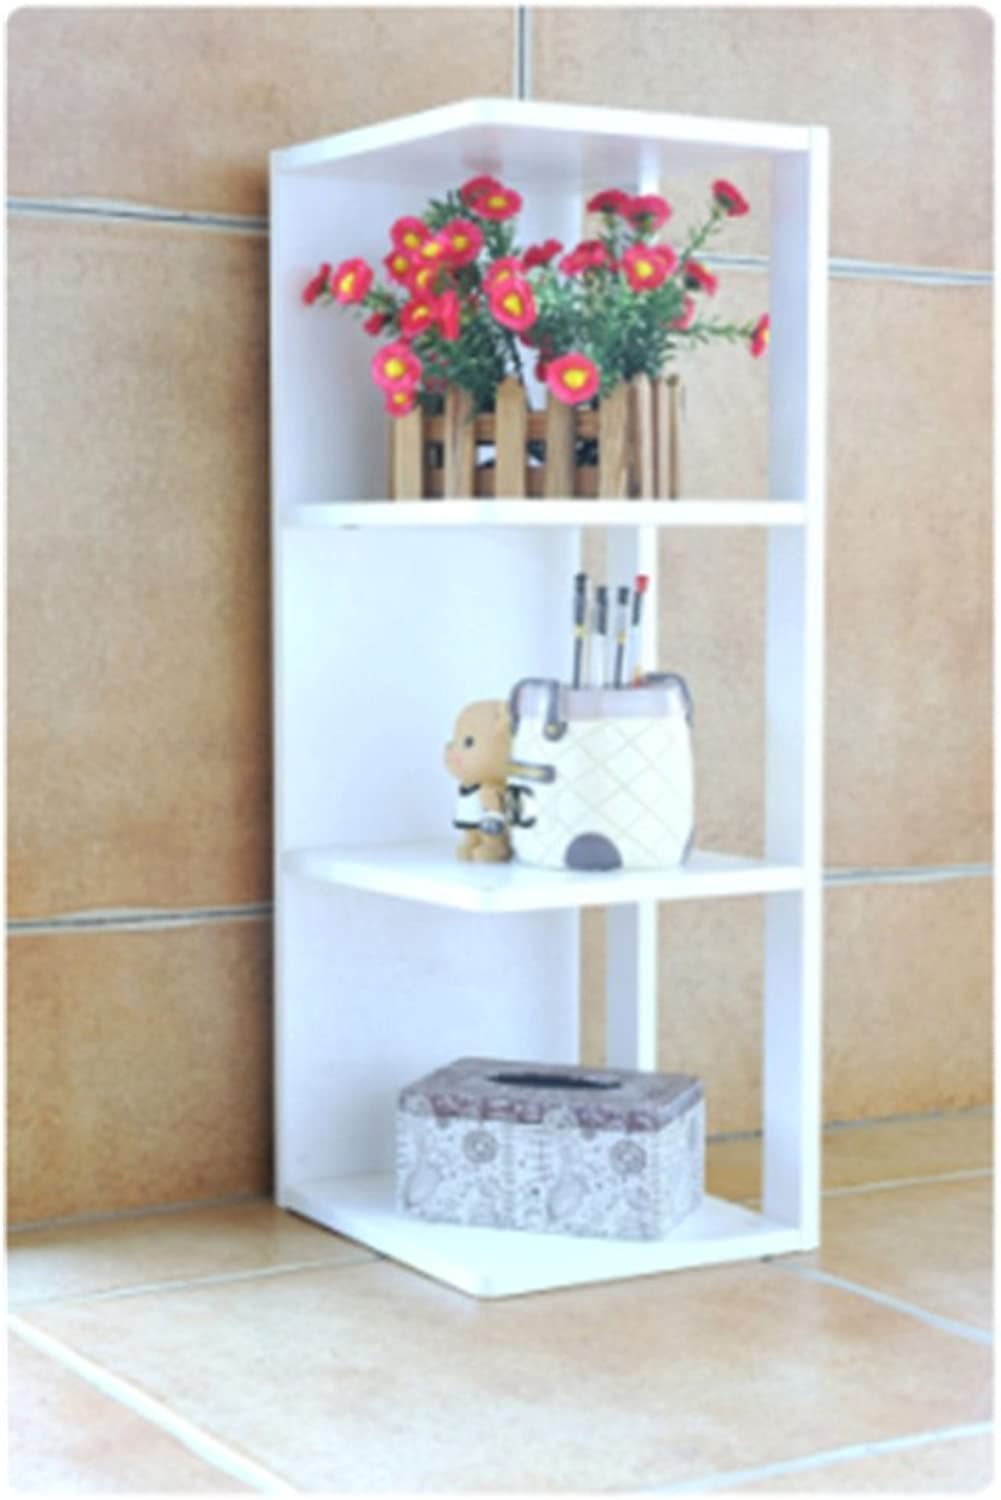 Bookshelf,Creative Multi Functional Storage Shelf Simple Home Storage Rack Bookcase-White 42x26x125cm(17x10x49)